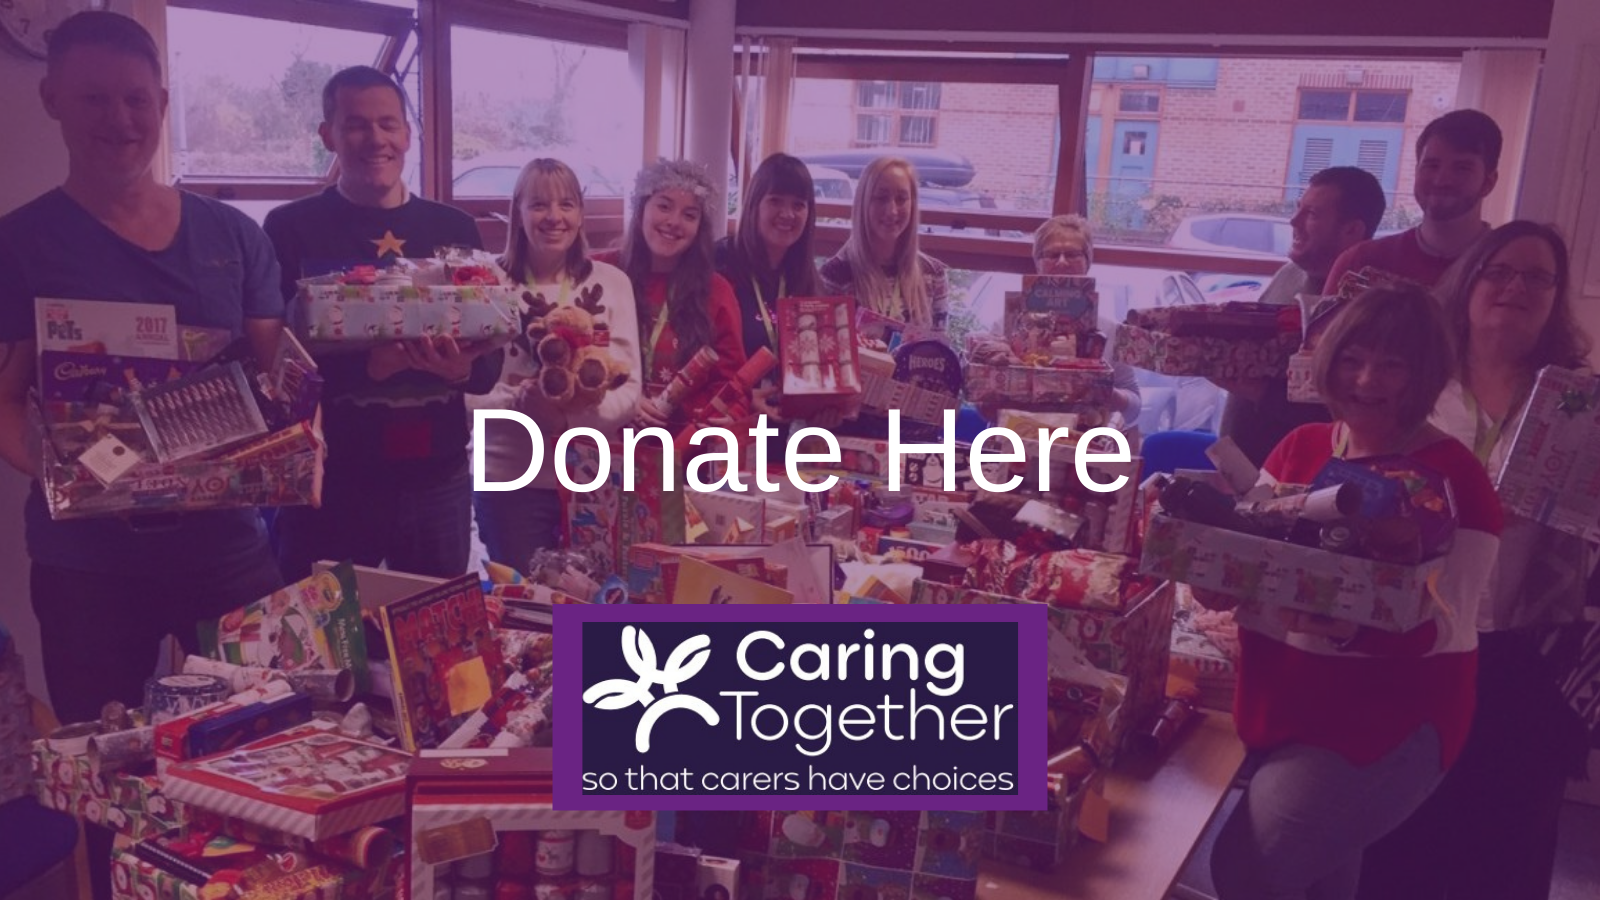 Caring Together Charity working with Maxine Lester to fundraise for local carers this Chrismtas